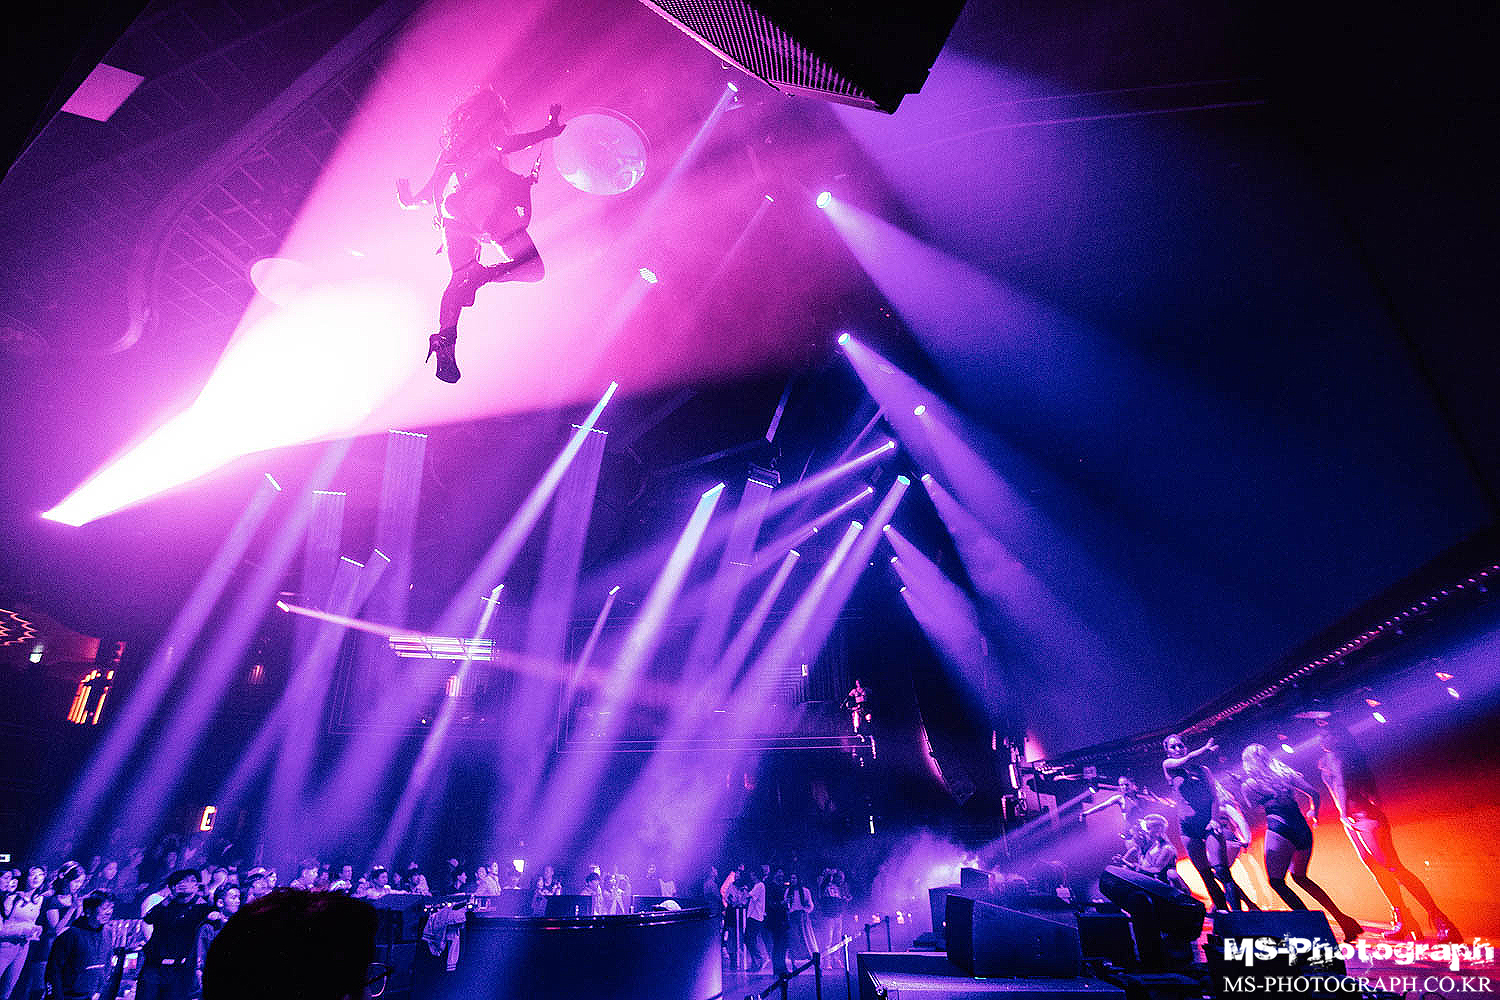 CLUB CHROMA at PARADISE CITY - In an aerial harness performance to accompany world renowned DJ, Plastik Funk